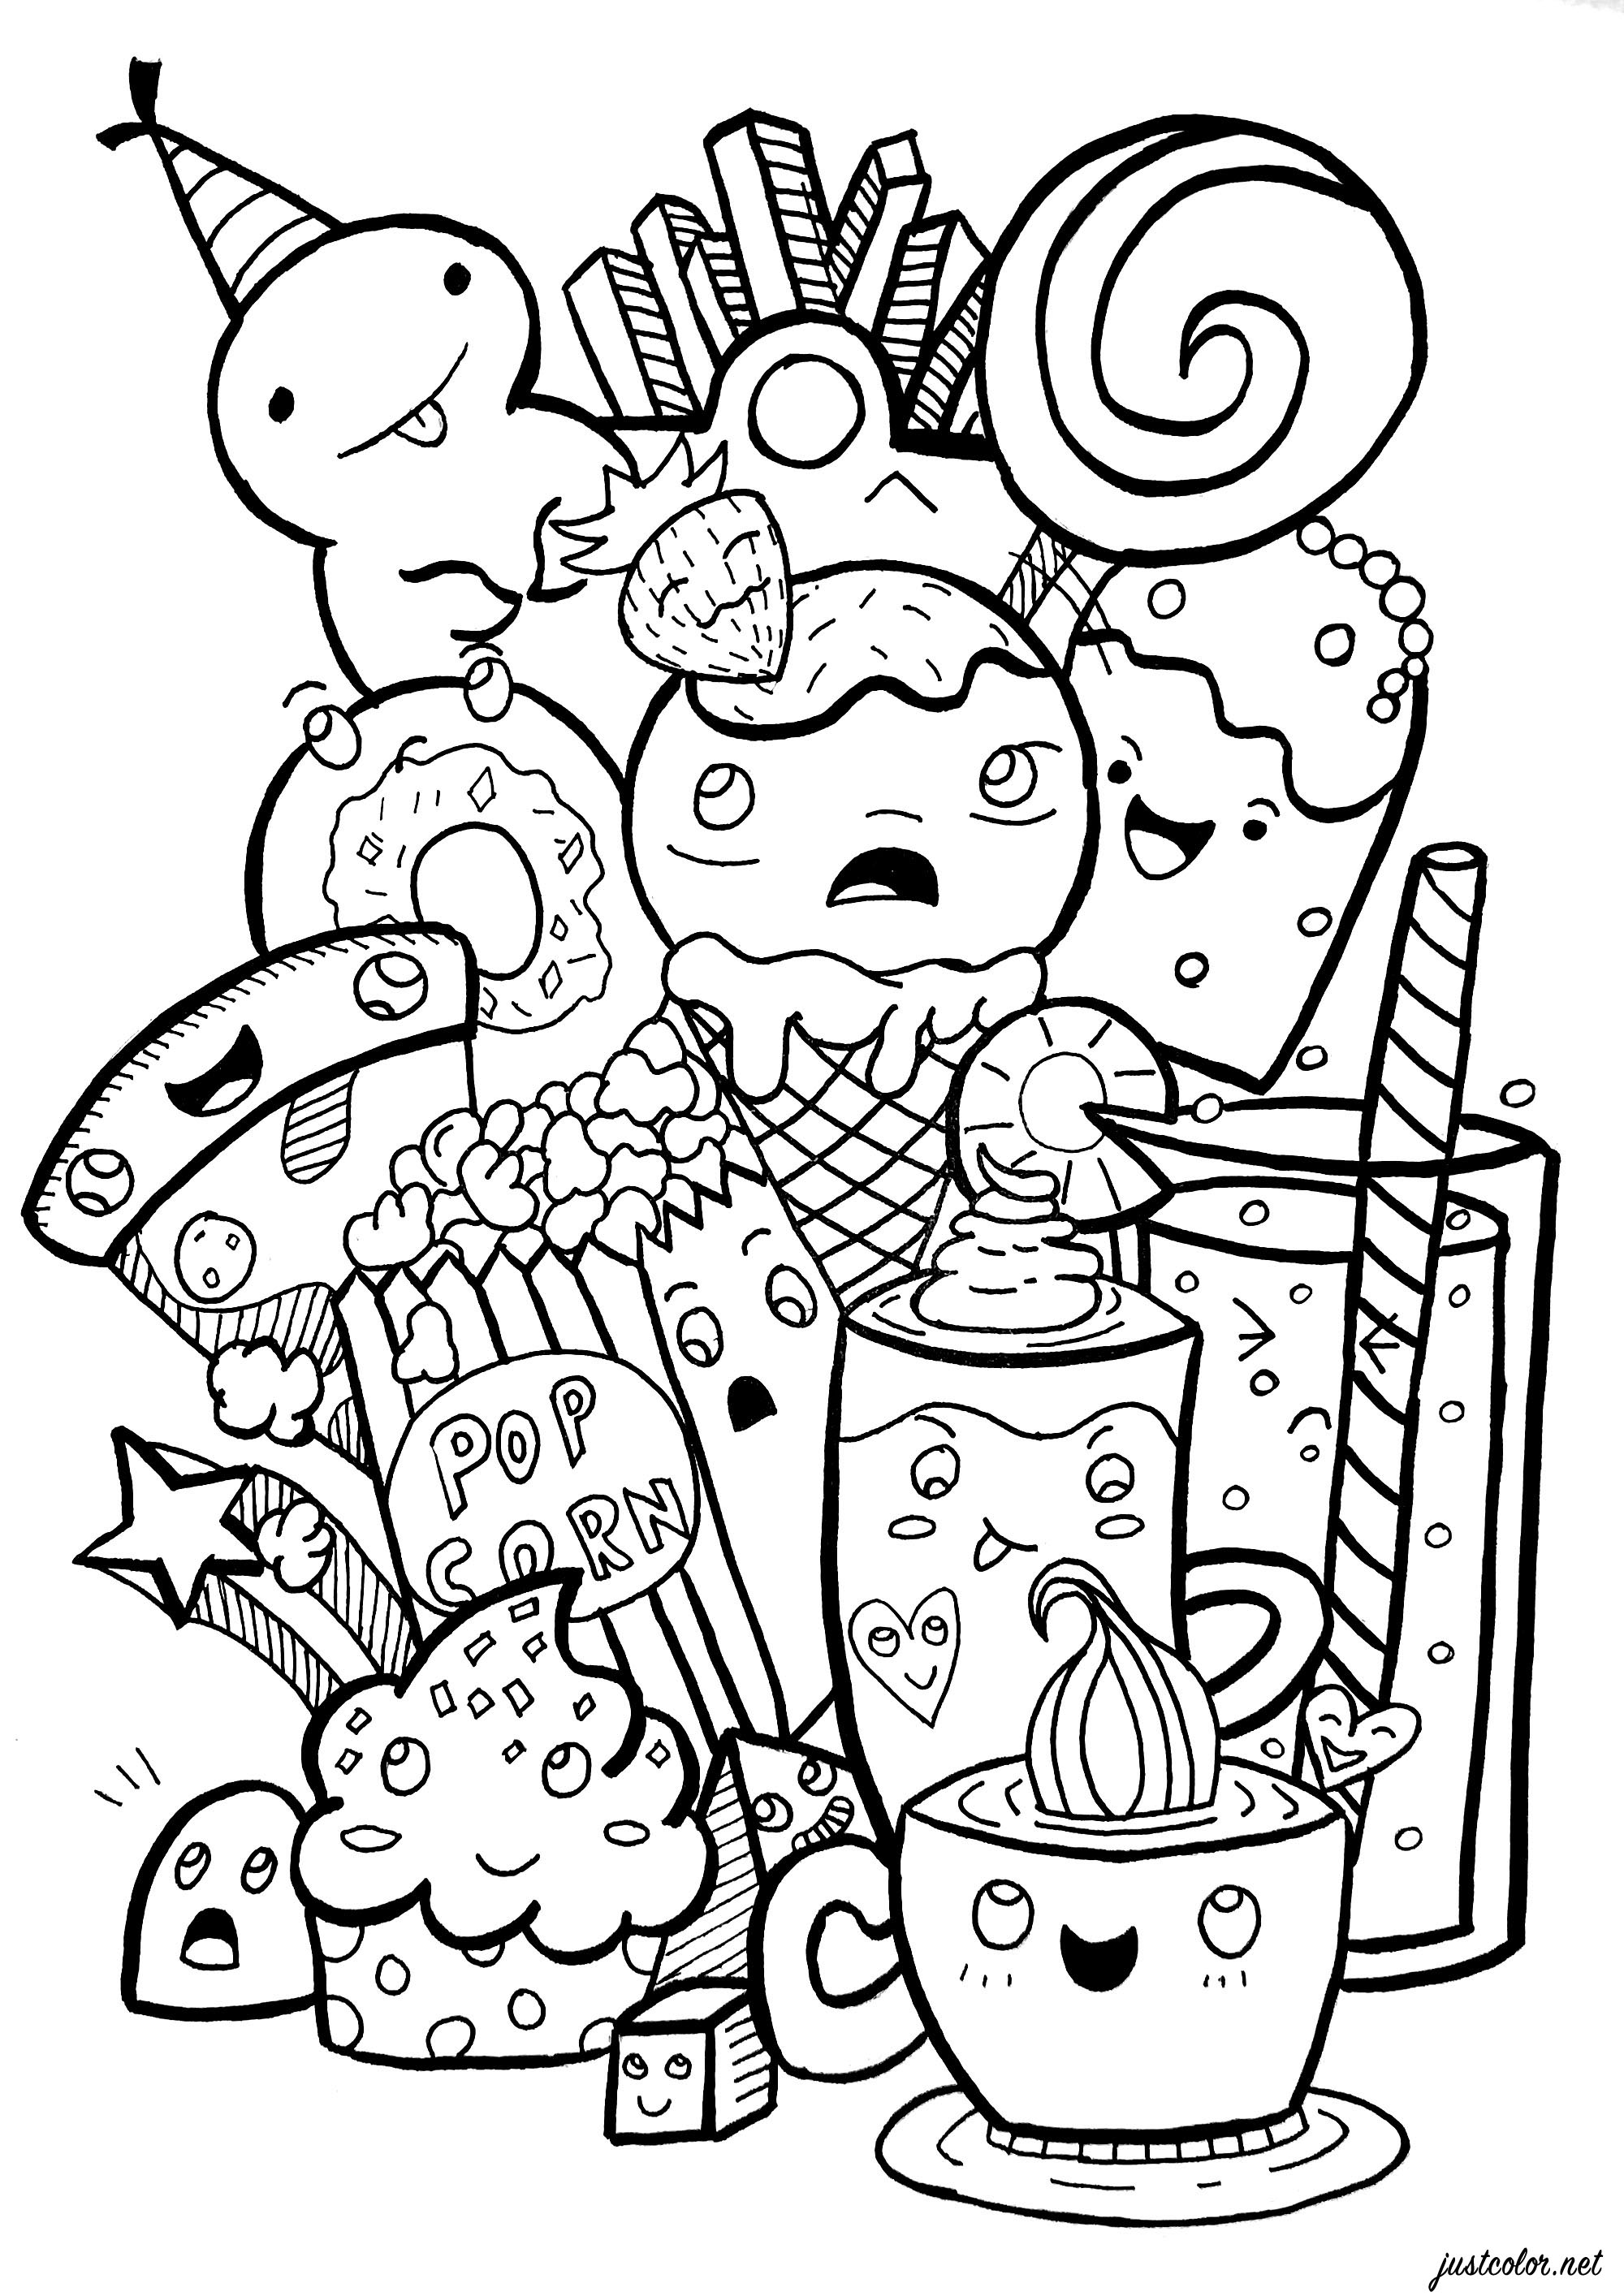 free doodle art to print and color lets doodle coloring pages coloring home to print color doodle art and free